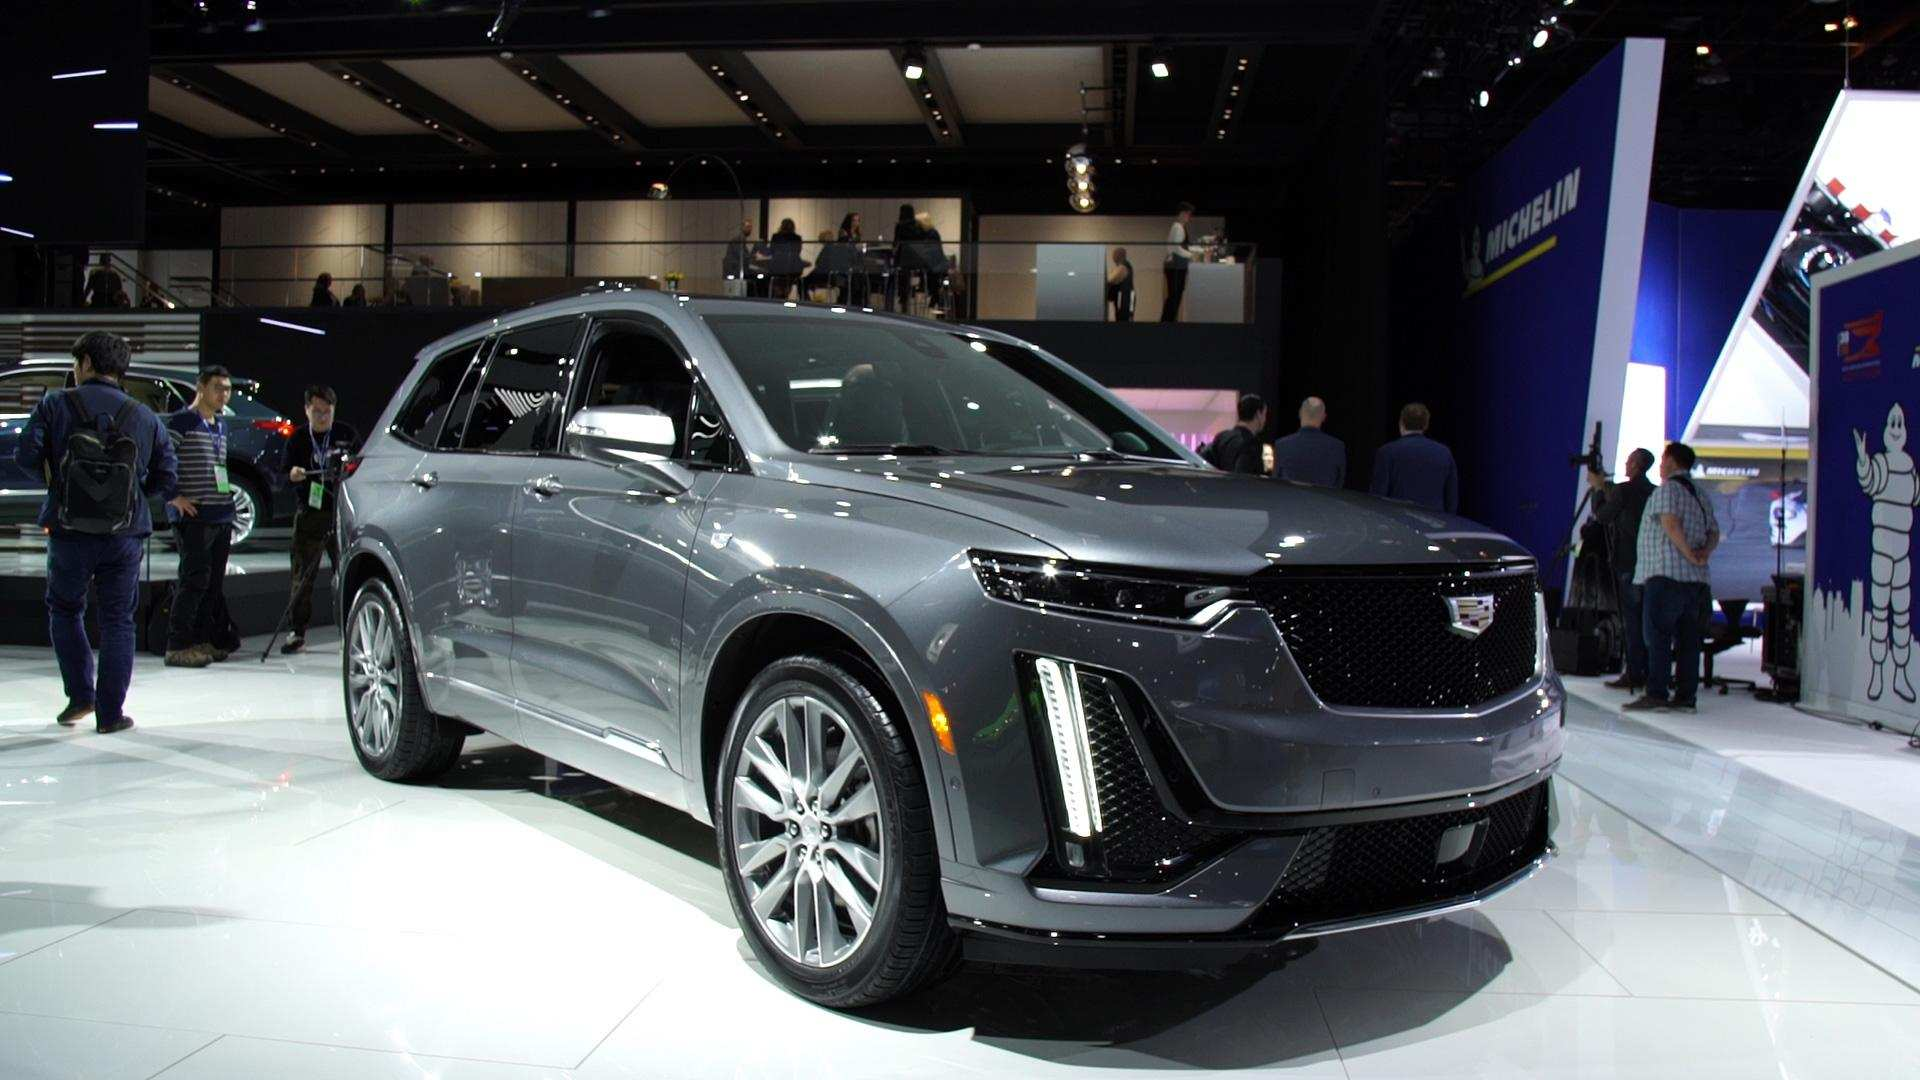 50 Concept of Cadillac Hybrid Suv 2020 Pictures by Cadillac Hybrid Suv 2020